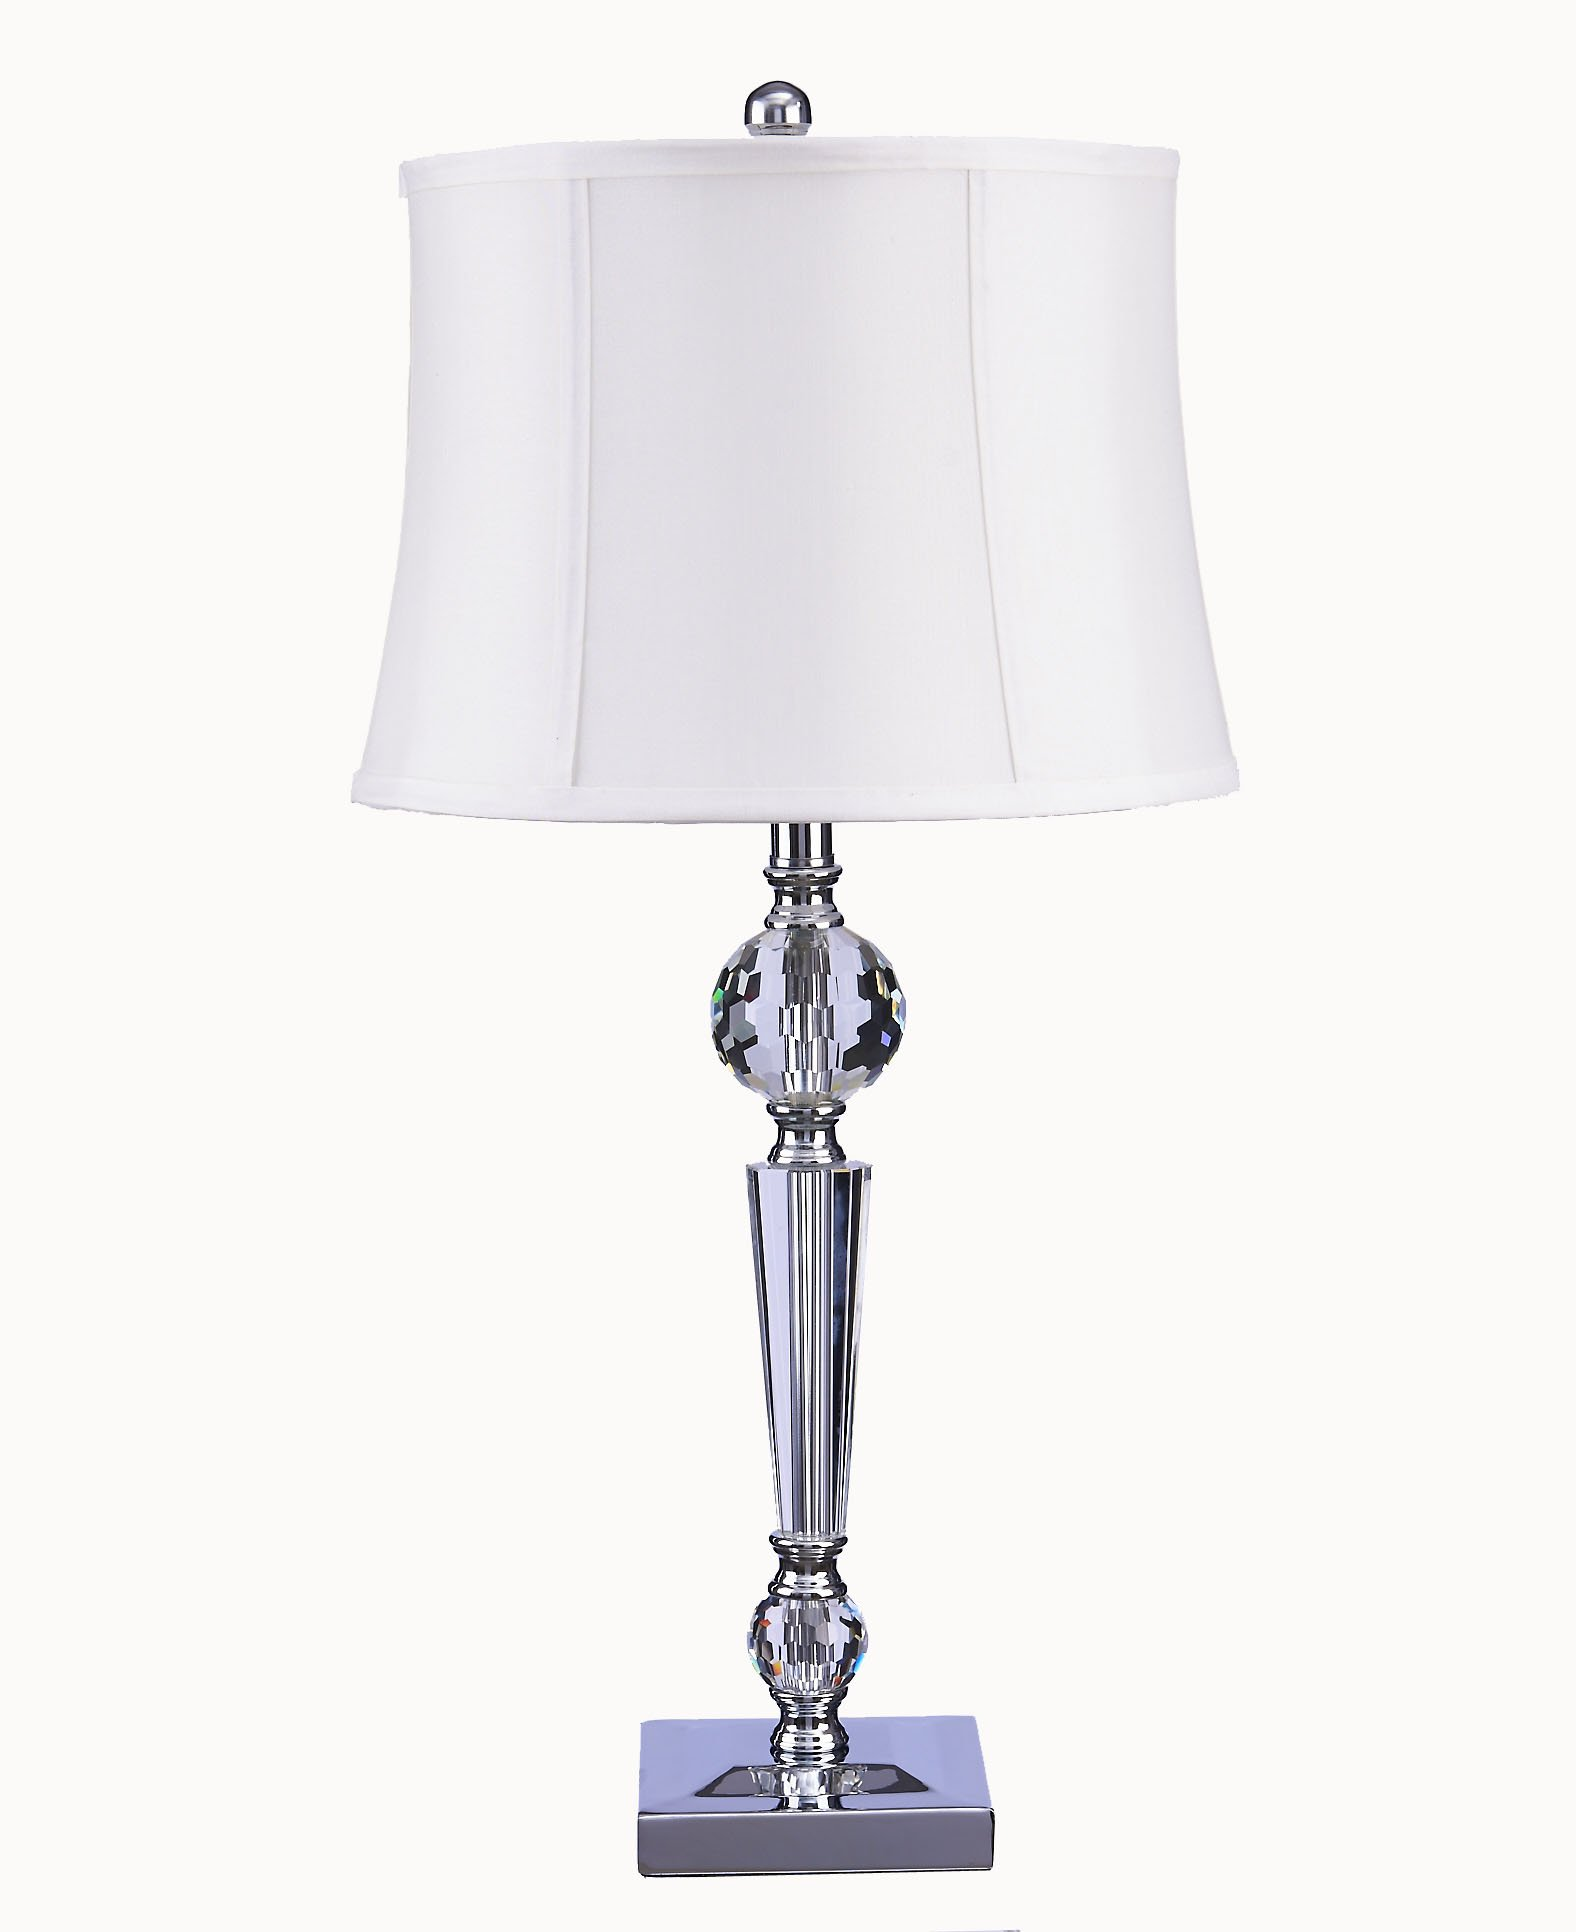 Catalina 20417-001 Camille 3-Way 28-Inch Faceted Crystal Clear Glass Table Lamp with Off White faix Silk Bell Shade, Bulb Included